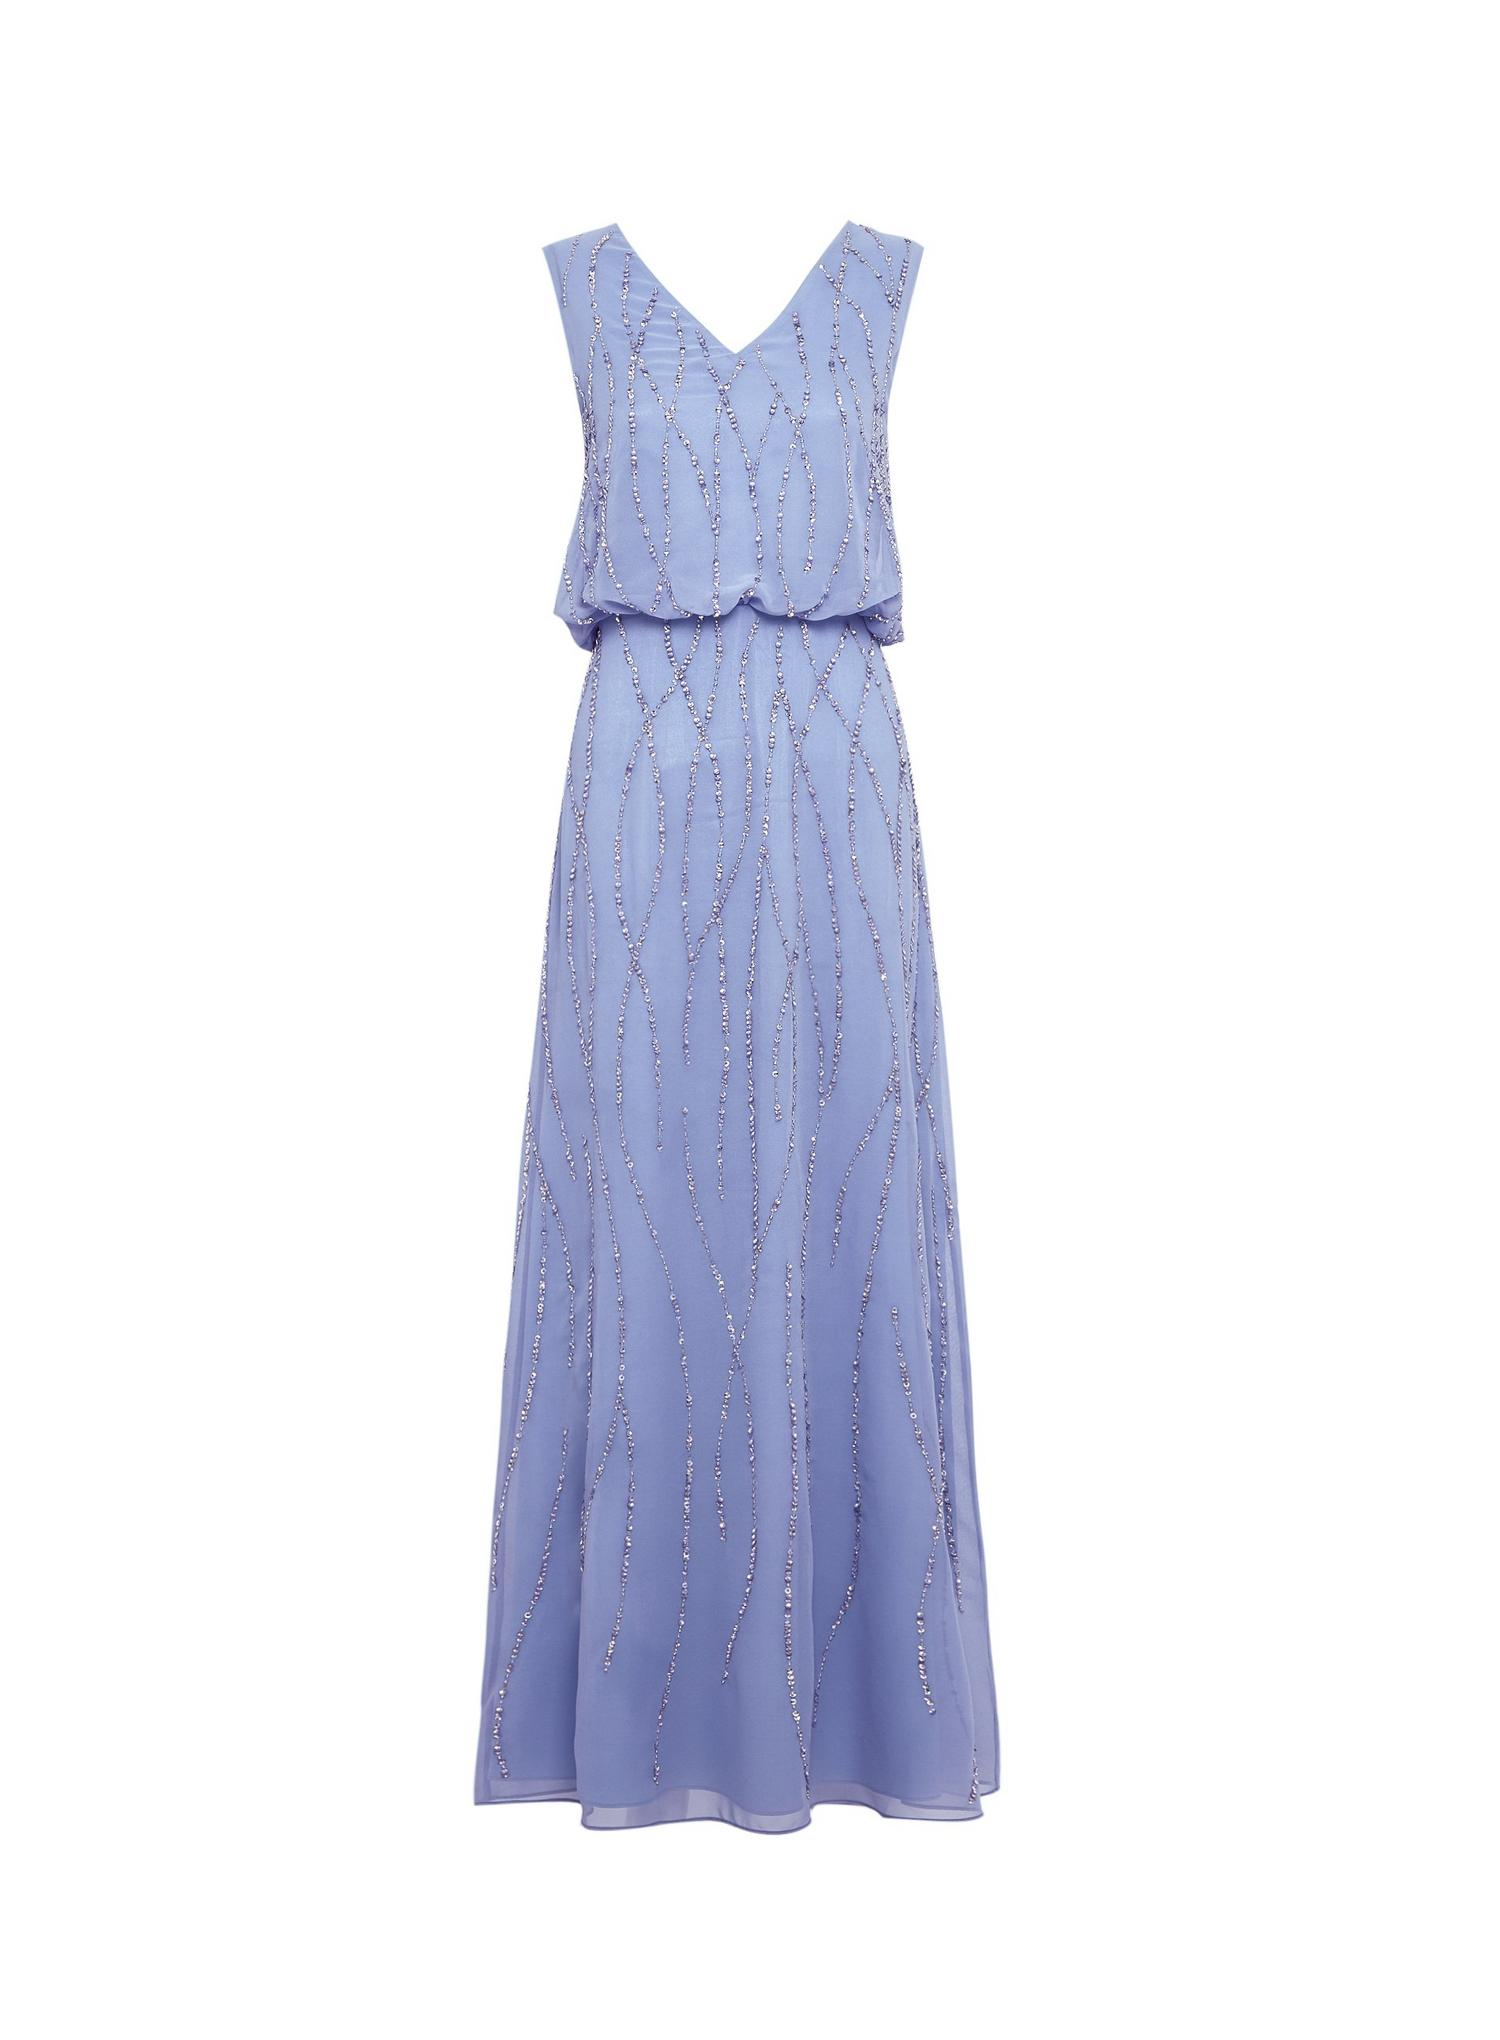 106 Cornflower Morgan Maxi Dress image number 2